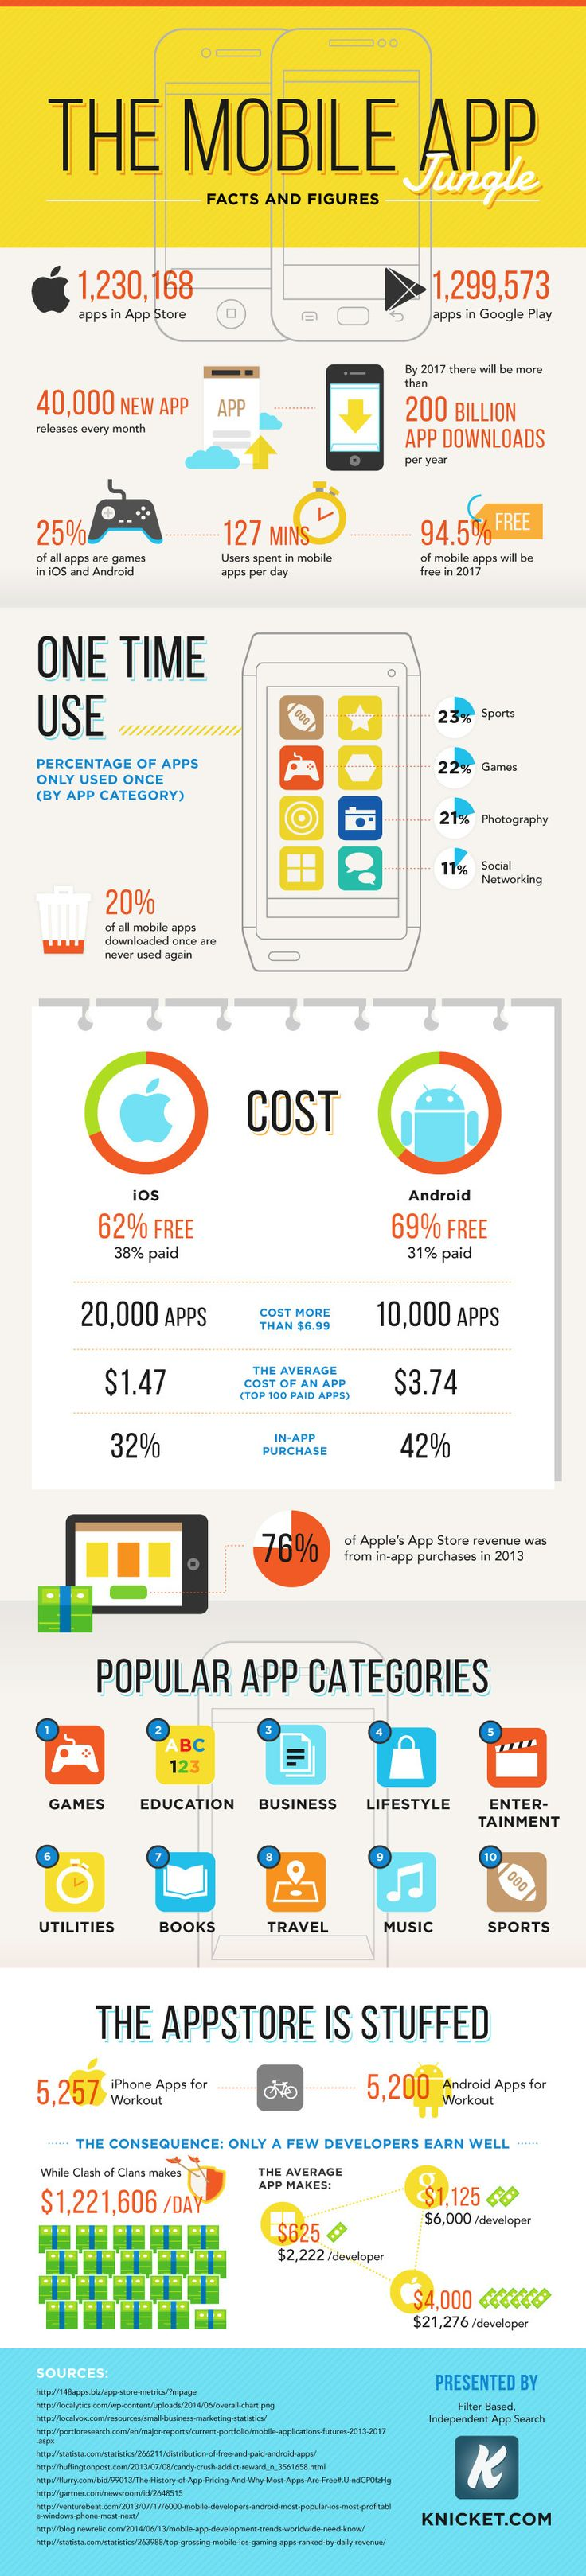 The Mobile App Facts & Figiures - #mobile